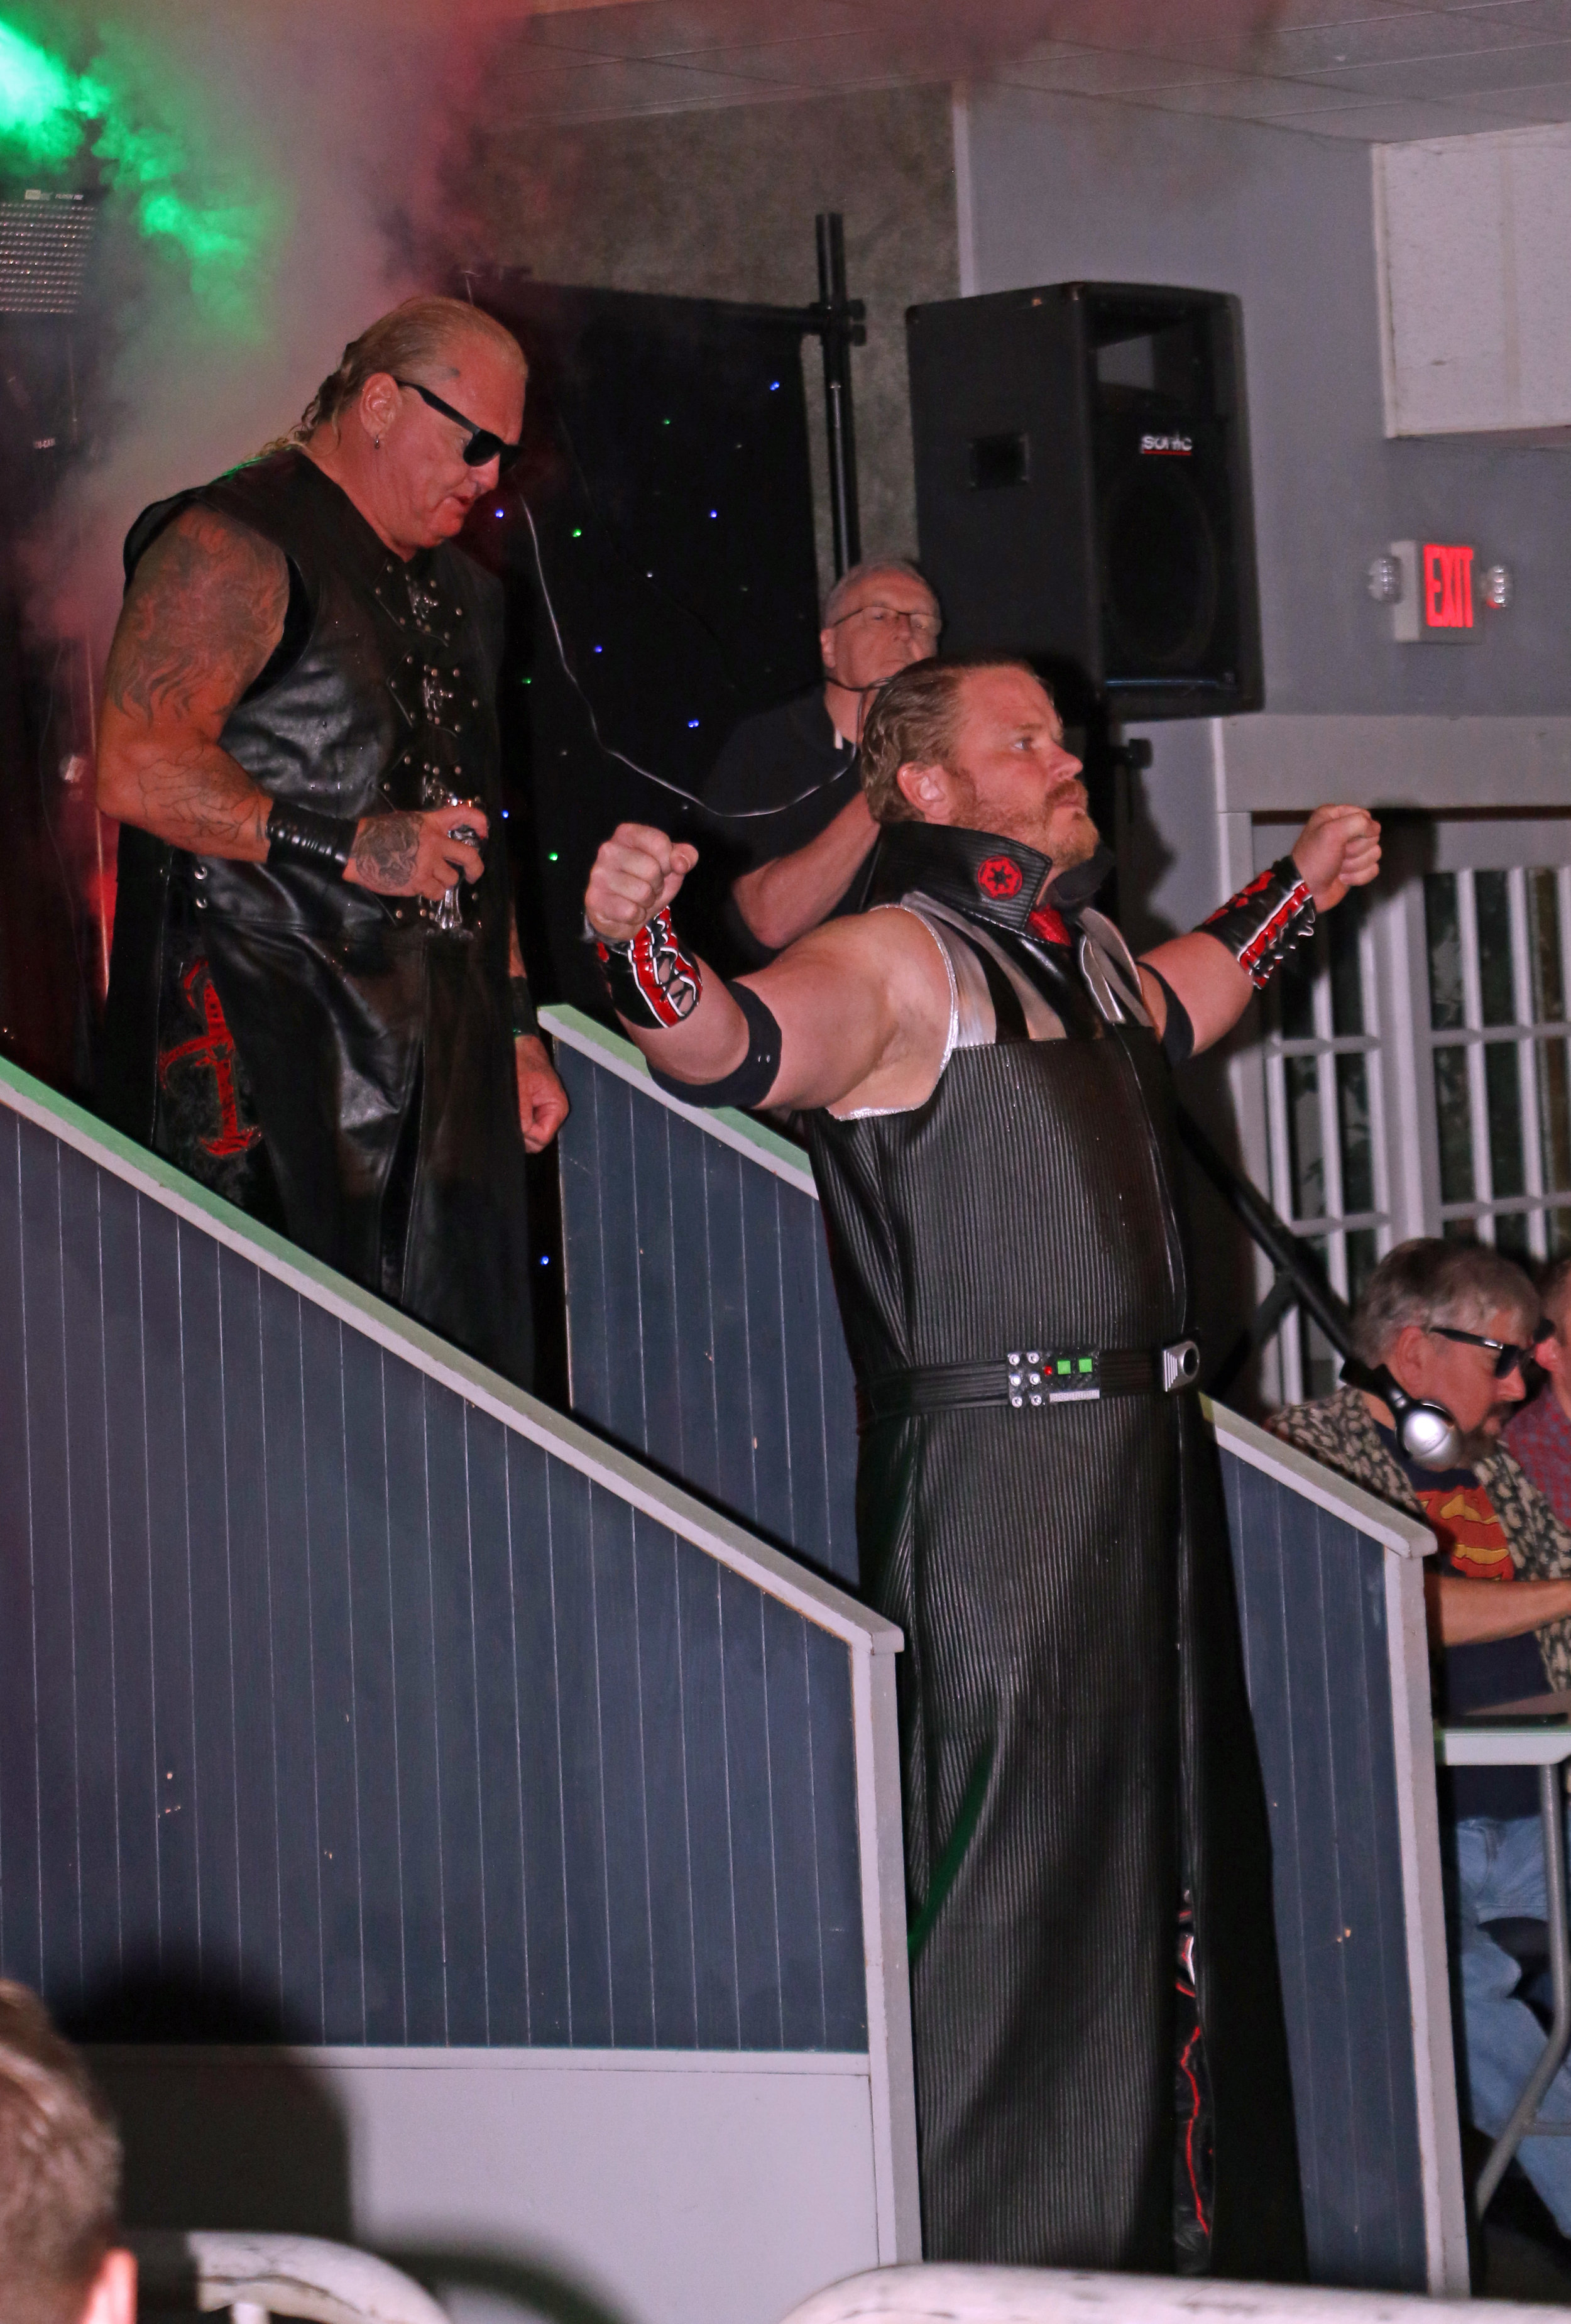 Former WWE Superstars Gangrel, left, and Kevin Thorn, make their entrance for their tag team match against Ryan Kross and Dr. Jeff Luxon.  (Photo by Mike Pankow)